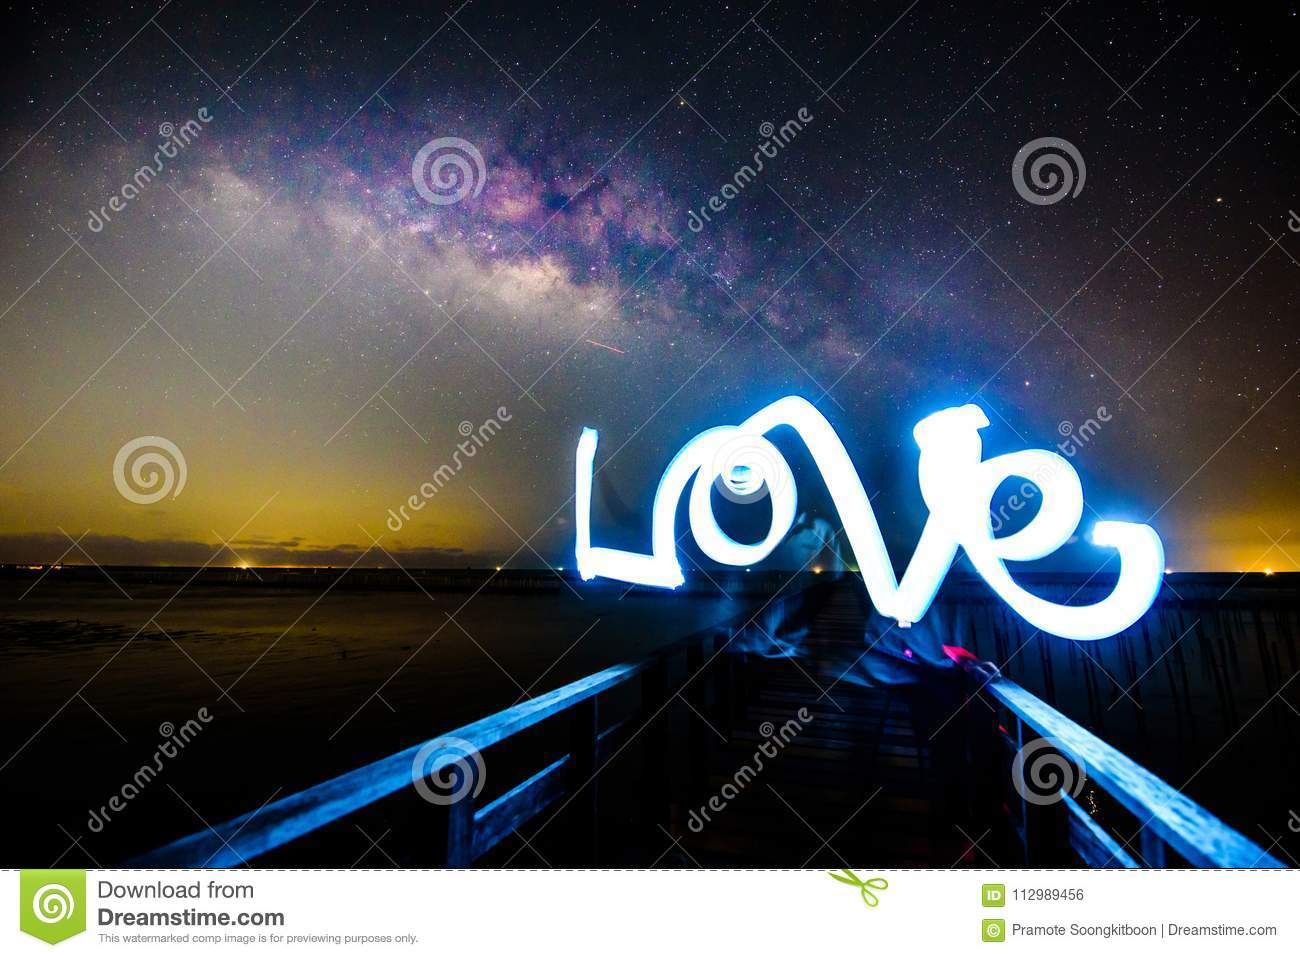 Light painting the LOVE word and milky way